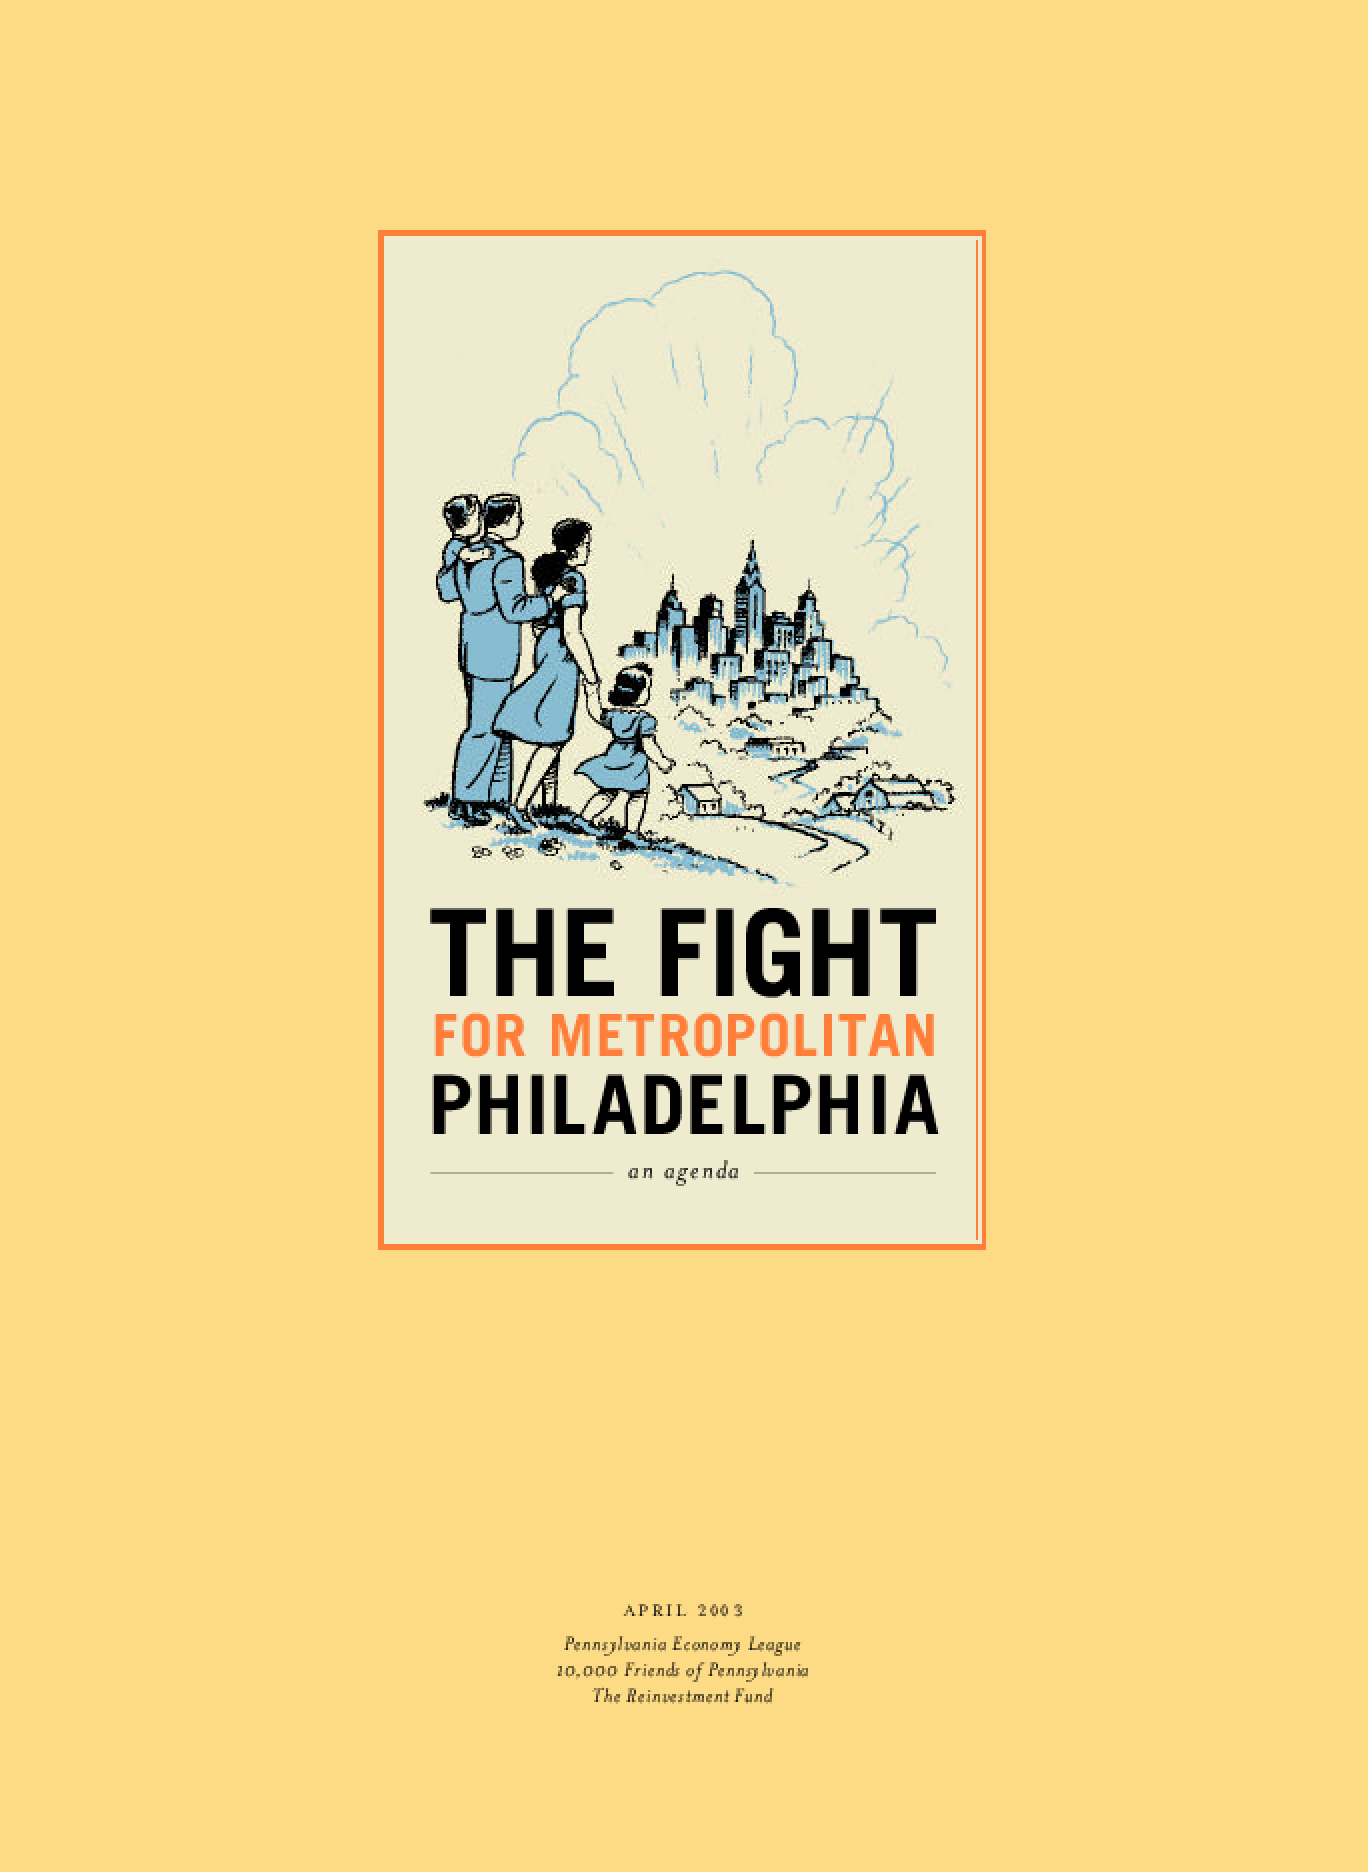 The Fight for Metropolitan Philadelphia: An Agenda